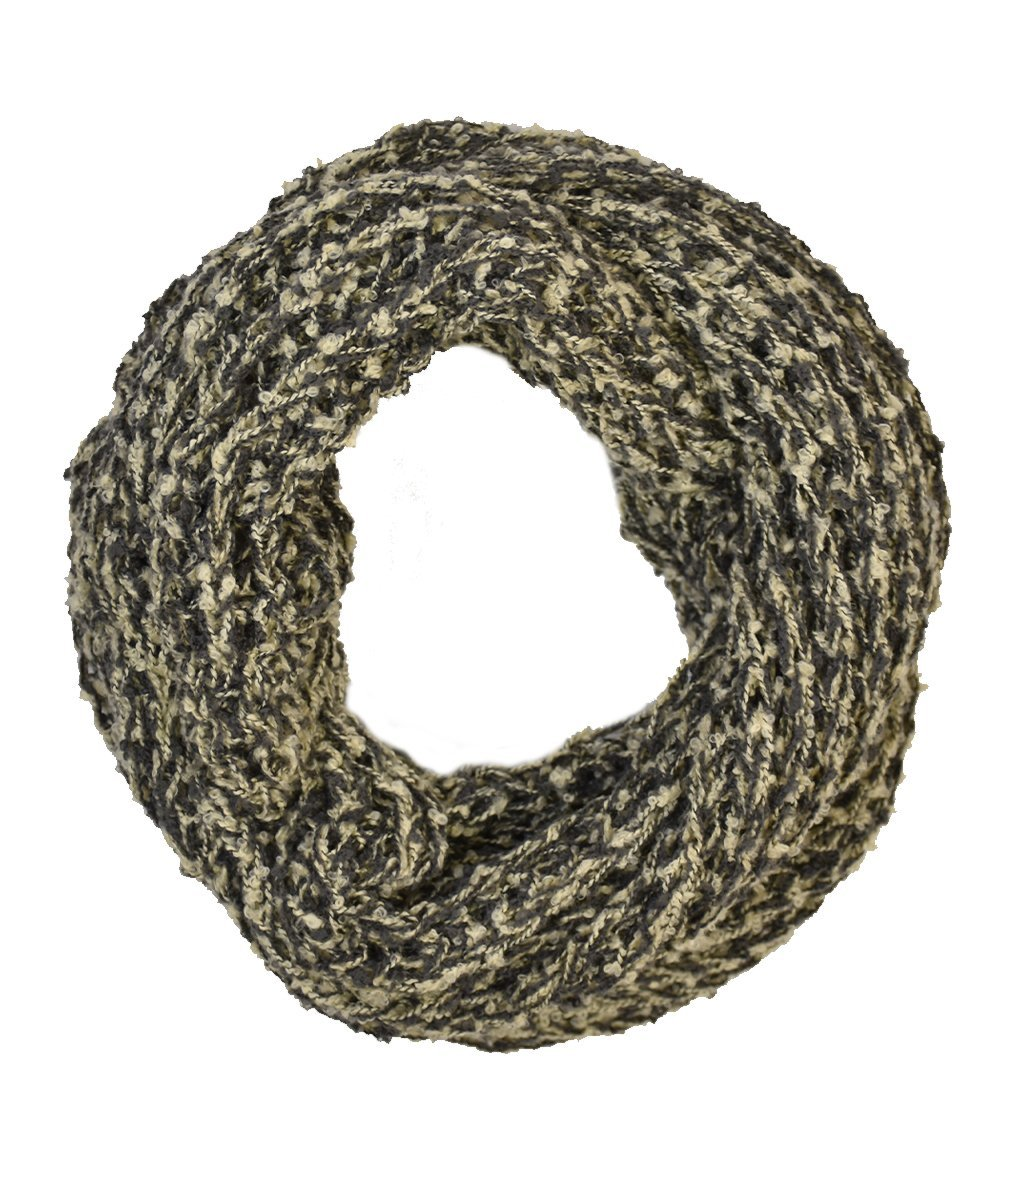 Le Nom Wavy Ribbed Crochet Knitted Infinity Scarf (Grey)